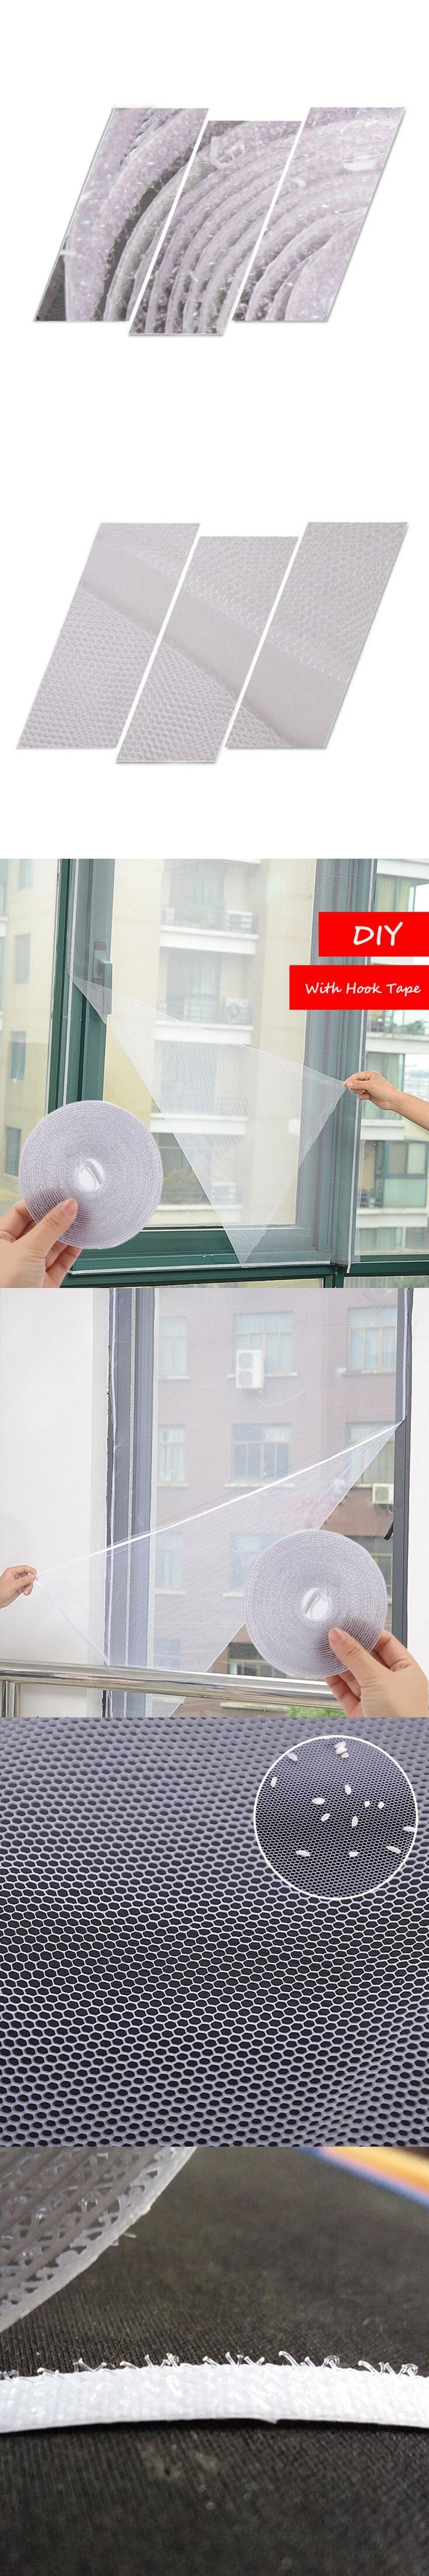 DIY Adhesive Anti-Mosquito Fly Bug Insect Curtain Mesh Window Screen Home Supplies may25